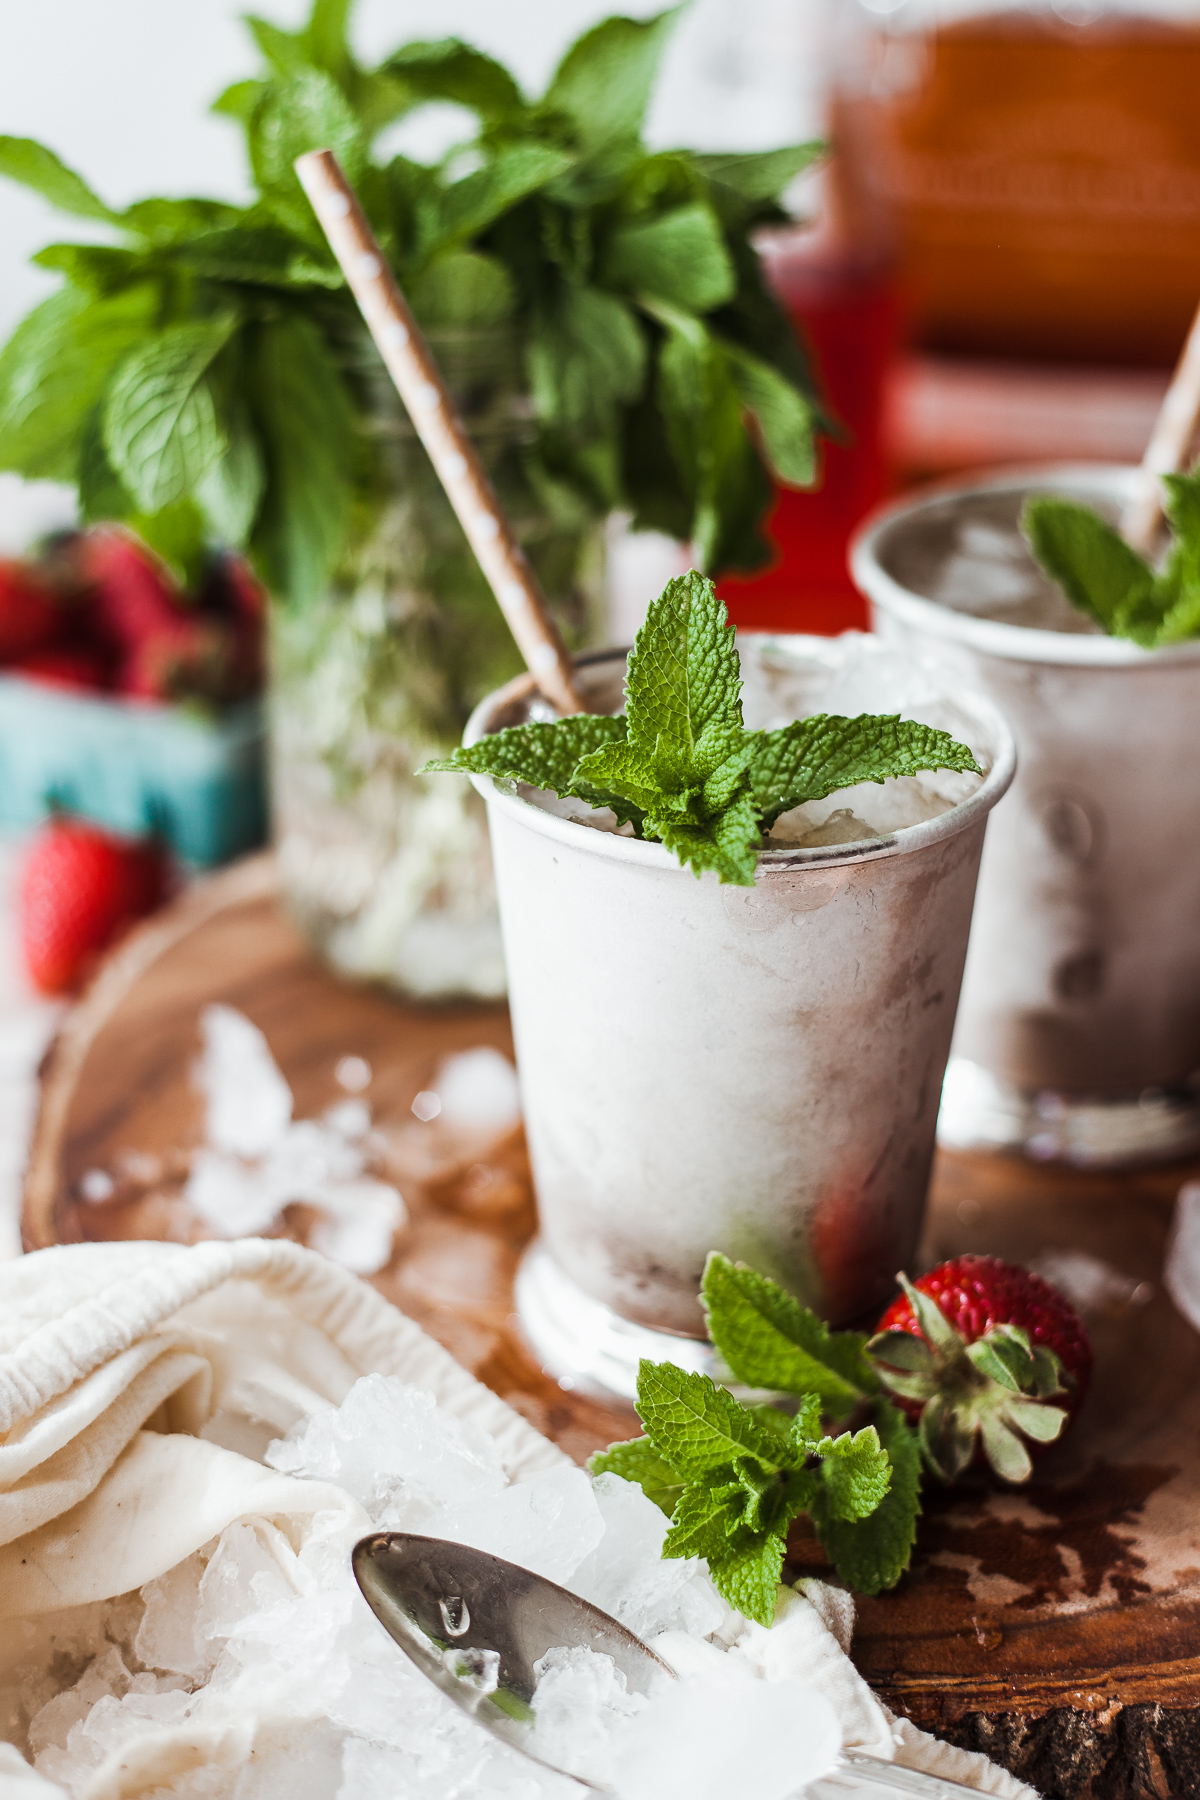 Strawberries and ginger update the traditional mint julep in this perfect for spring cocktail